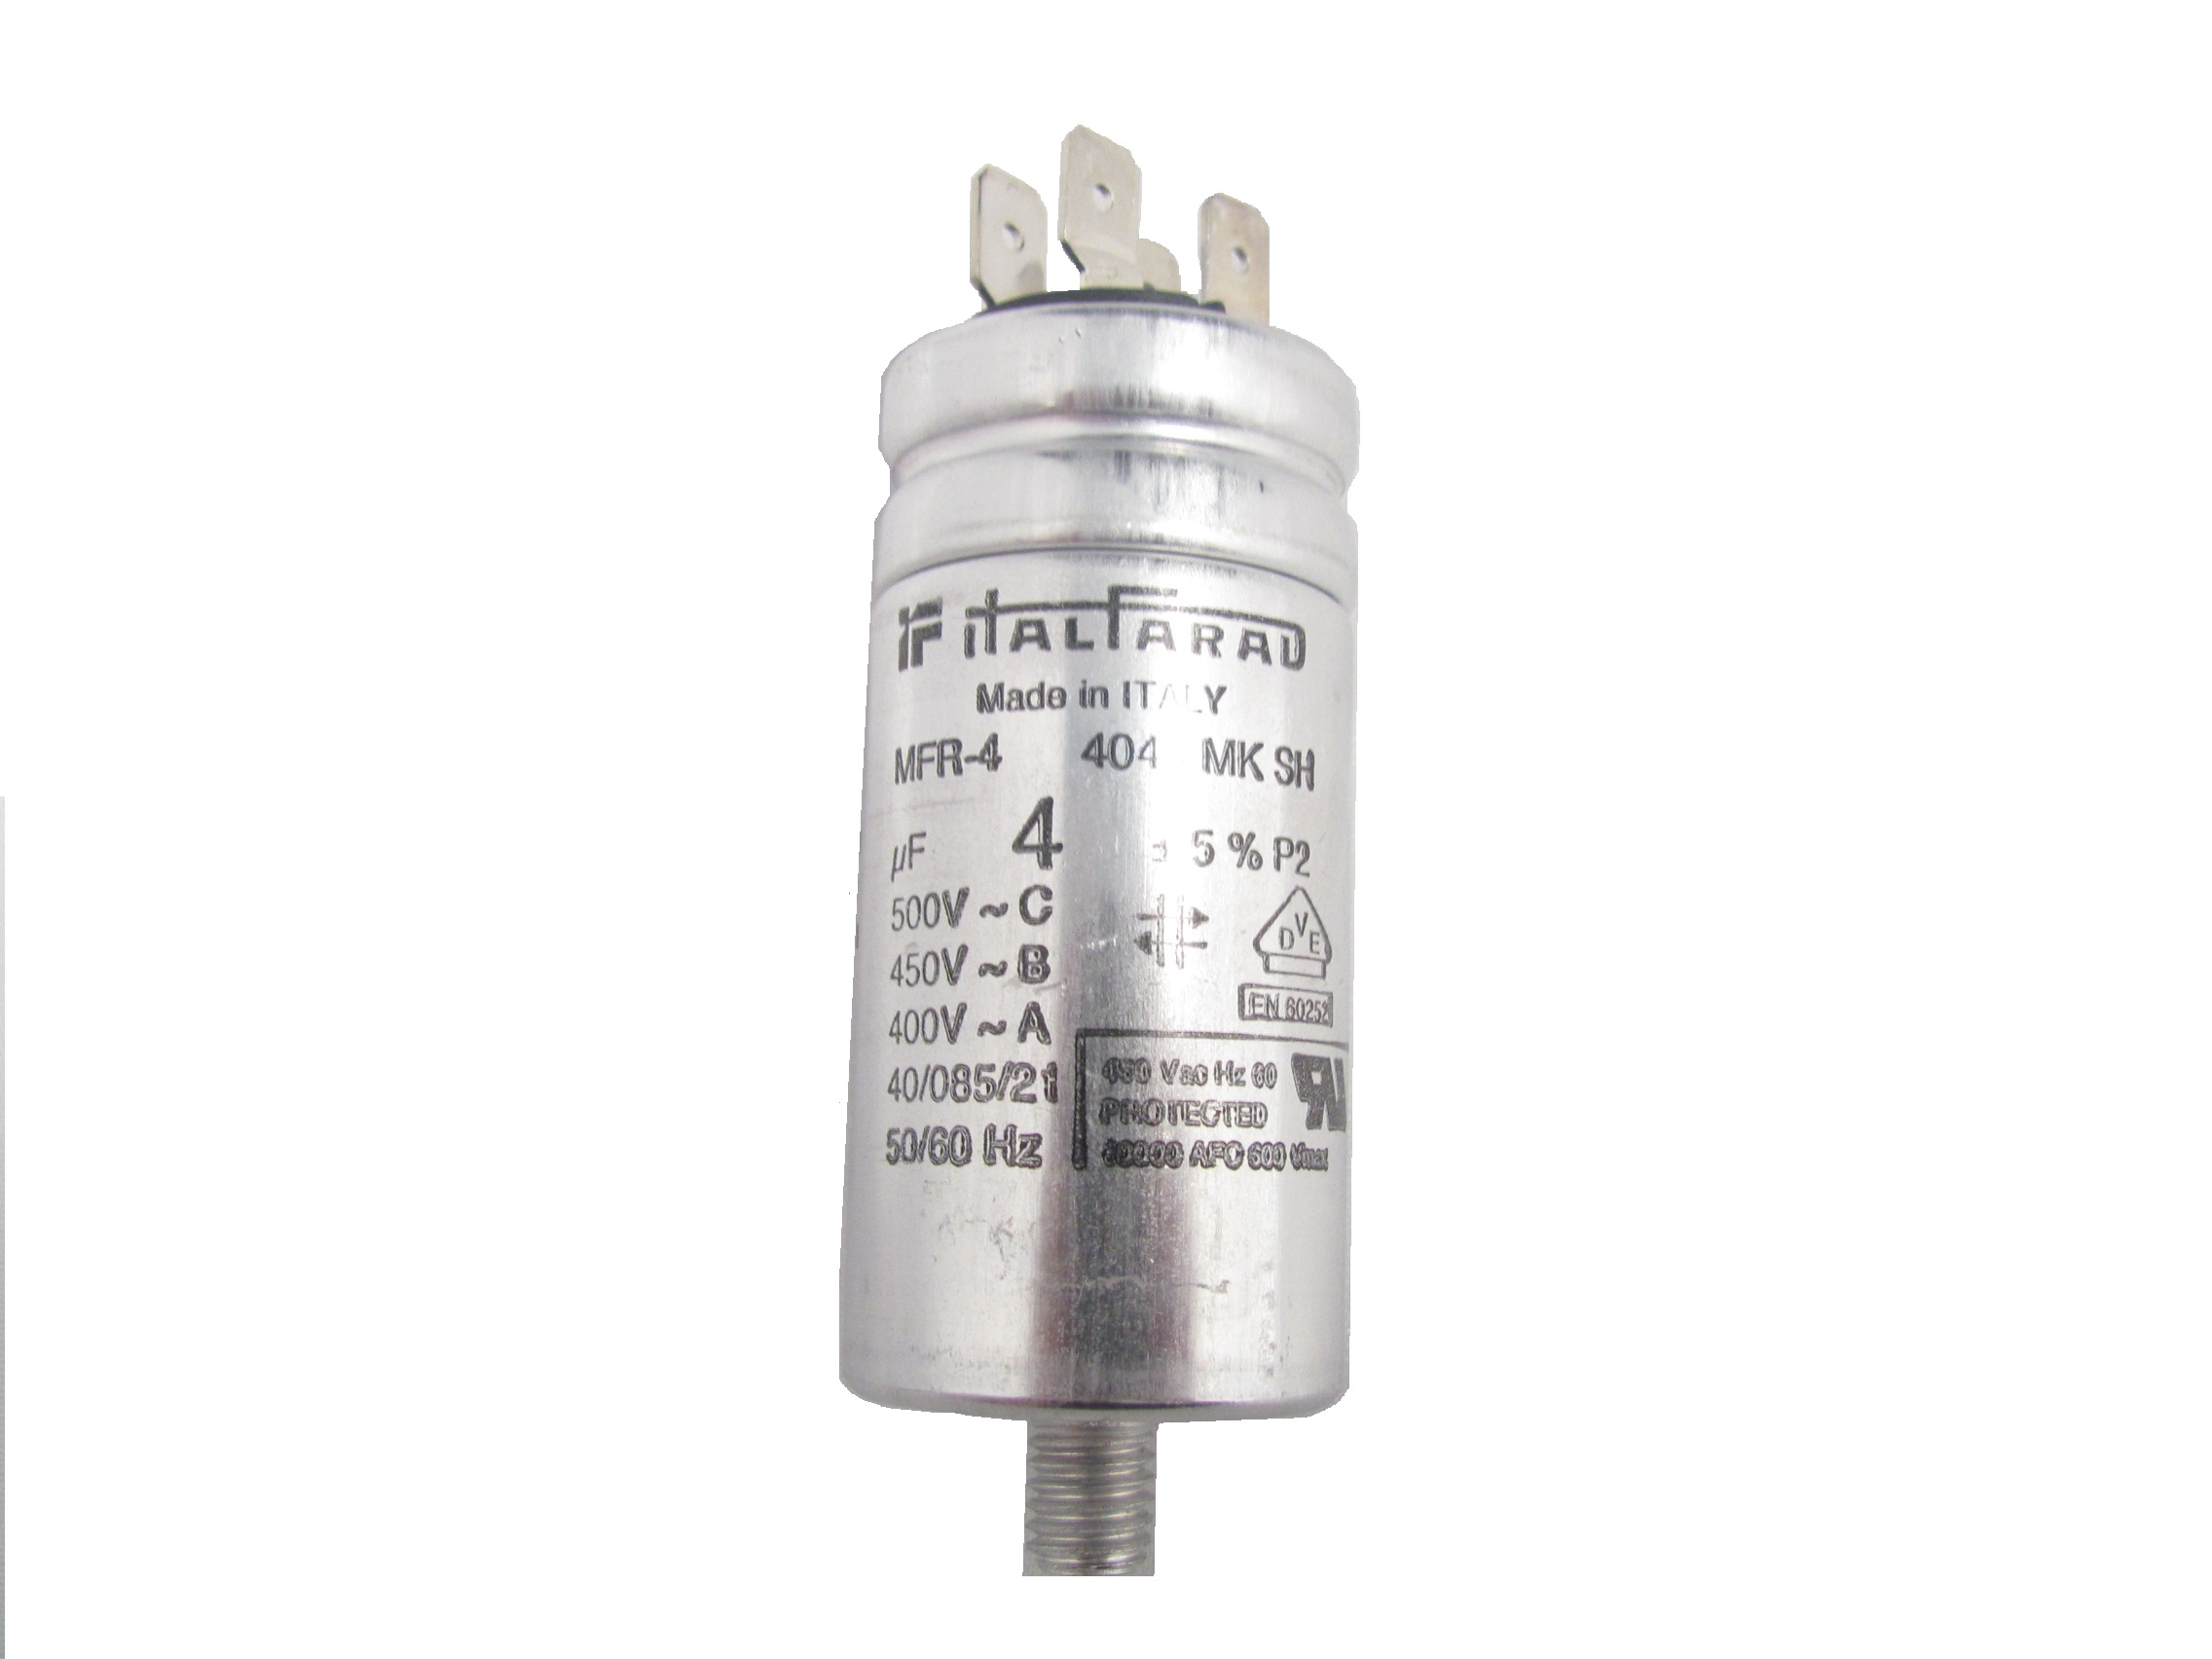 Italfarad MFR (Motor Run) Capacitors